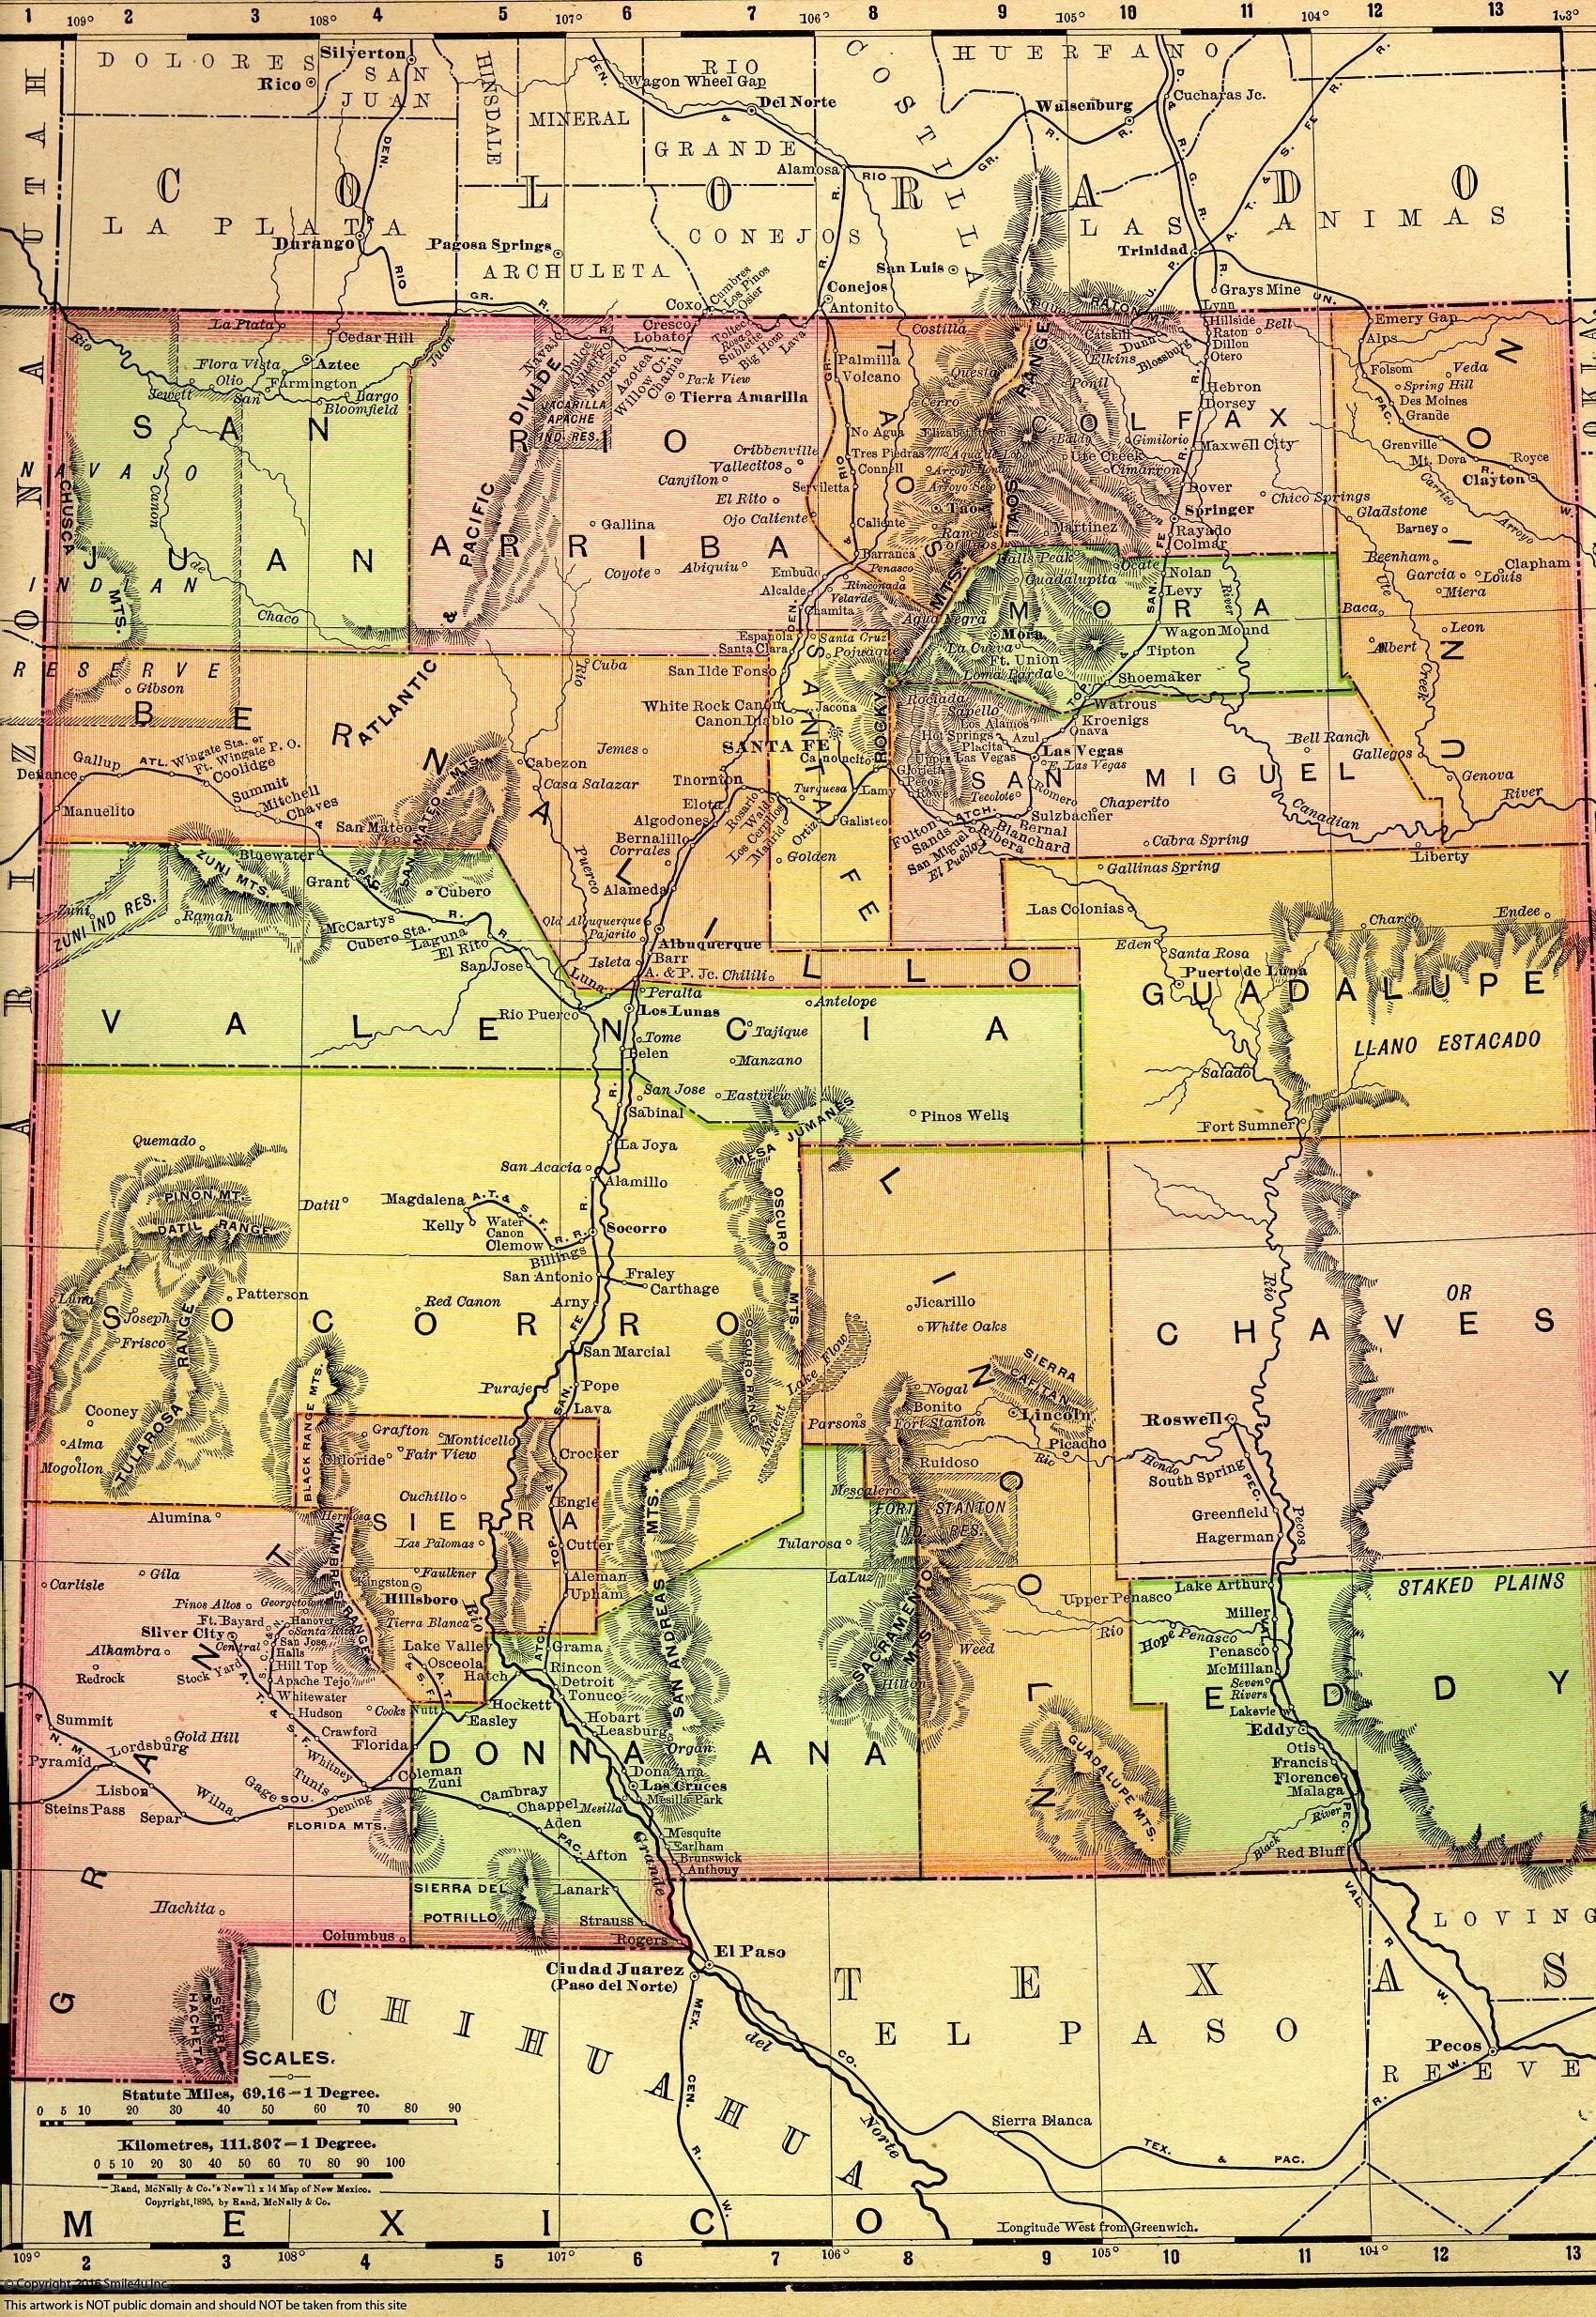 839322_watermarked_New Mexico State Map in 1895.jpg